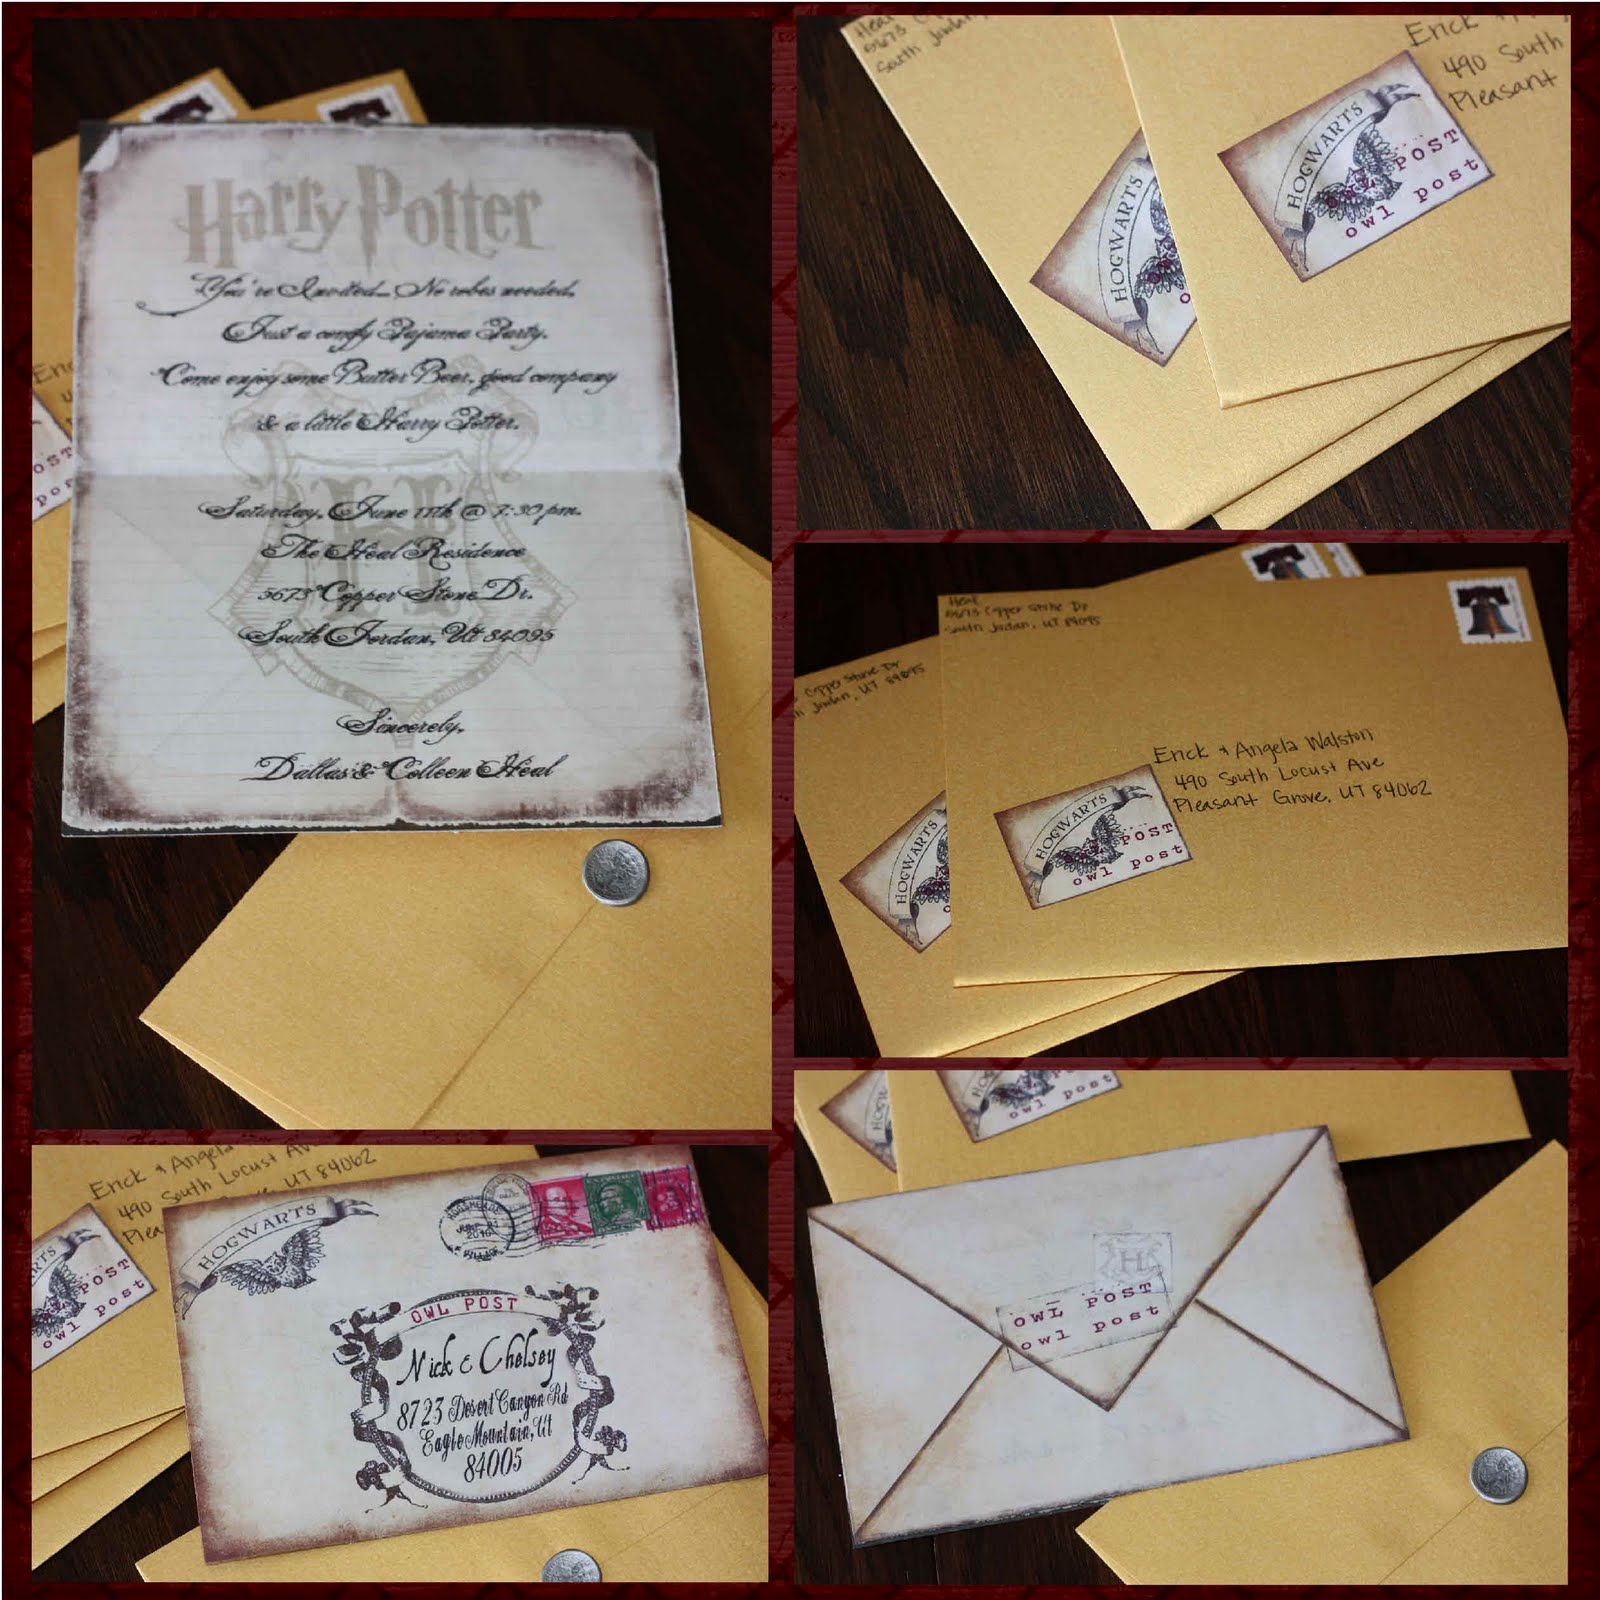 Harry Potter Invitation Ideas Unique Just Sweet and Simple Harry Potter Invites